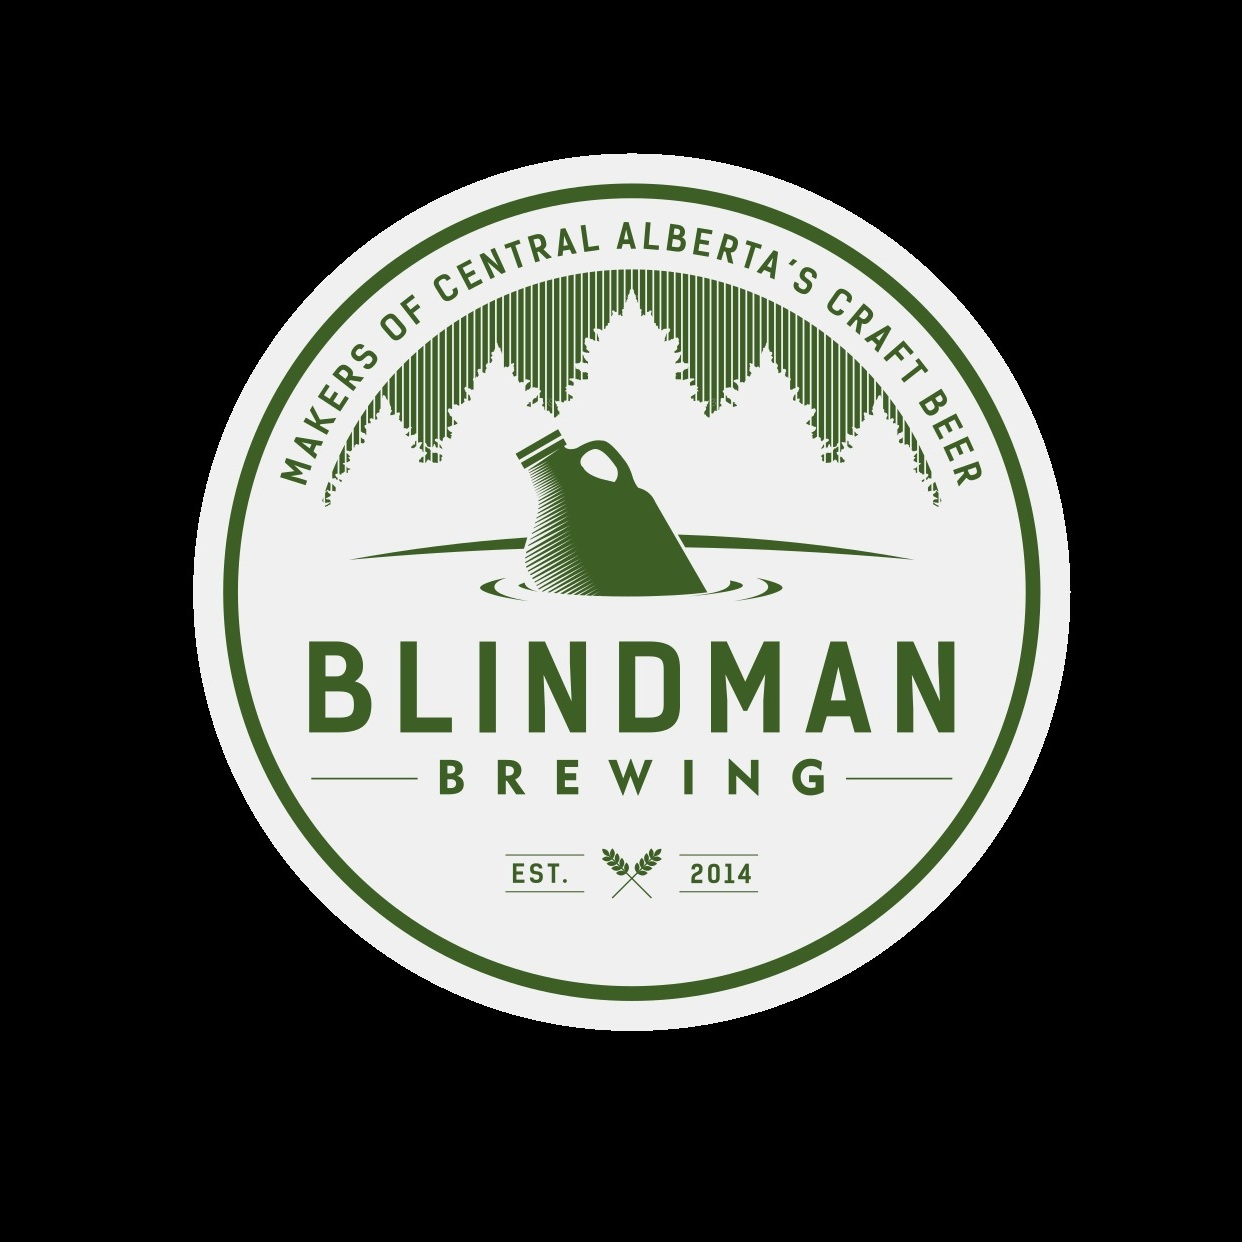 Blindman Brewing - Craft Beer